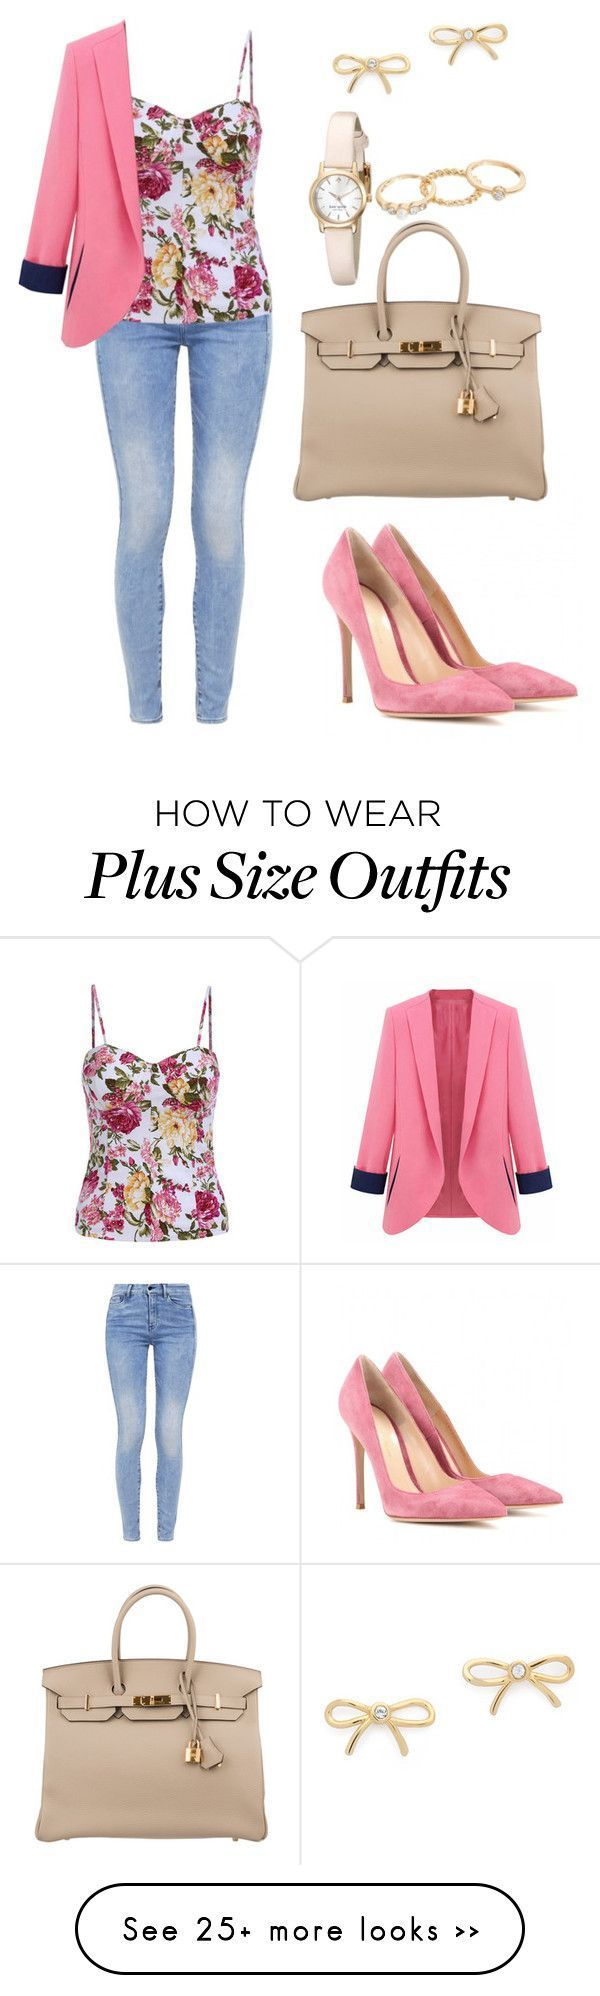 """M147"" by pinkgirl501 on Polyvore featuring G-Star, Gianvito Rossi, Hermès, Kate Spade and Mudd"